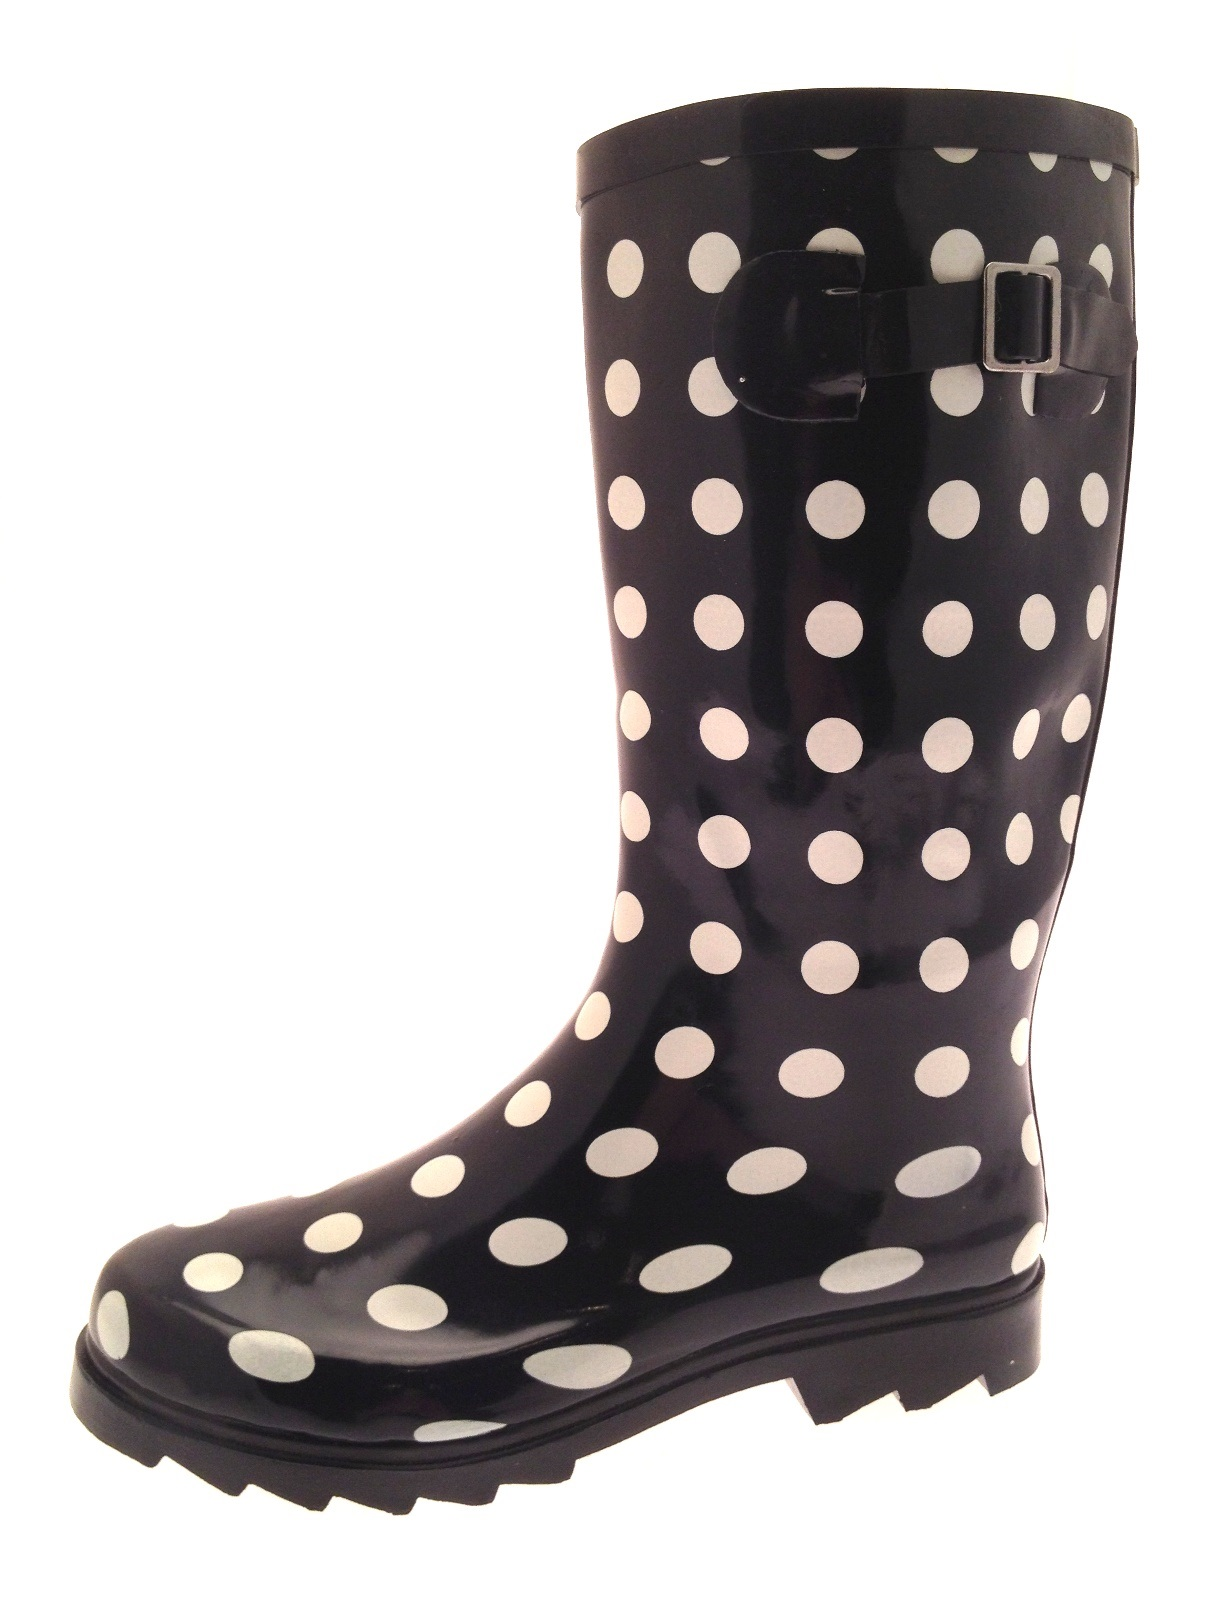 Ladies Women/'s Spotted Wellington Boots Rainy Snow Waterproof Wellies 3-8